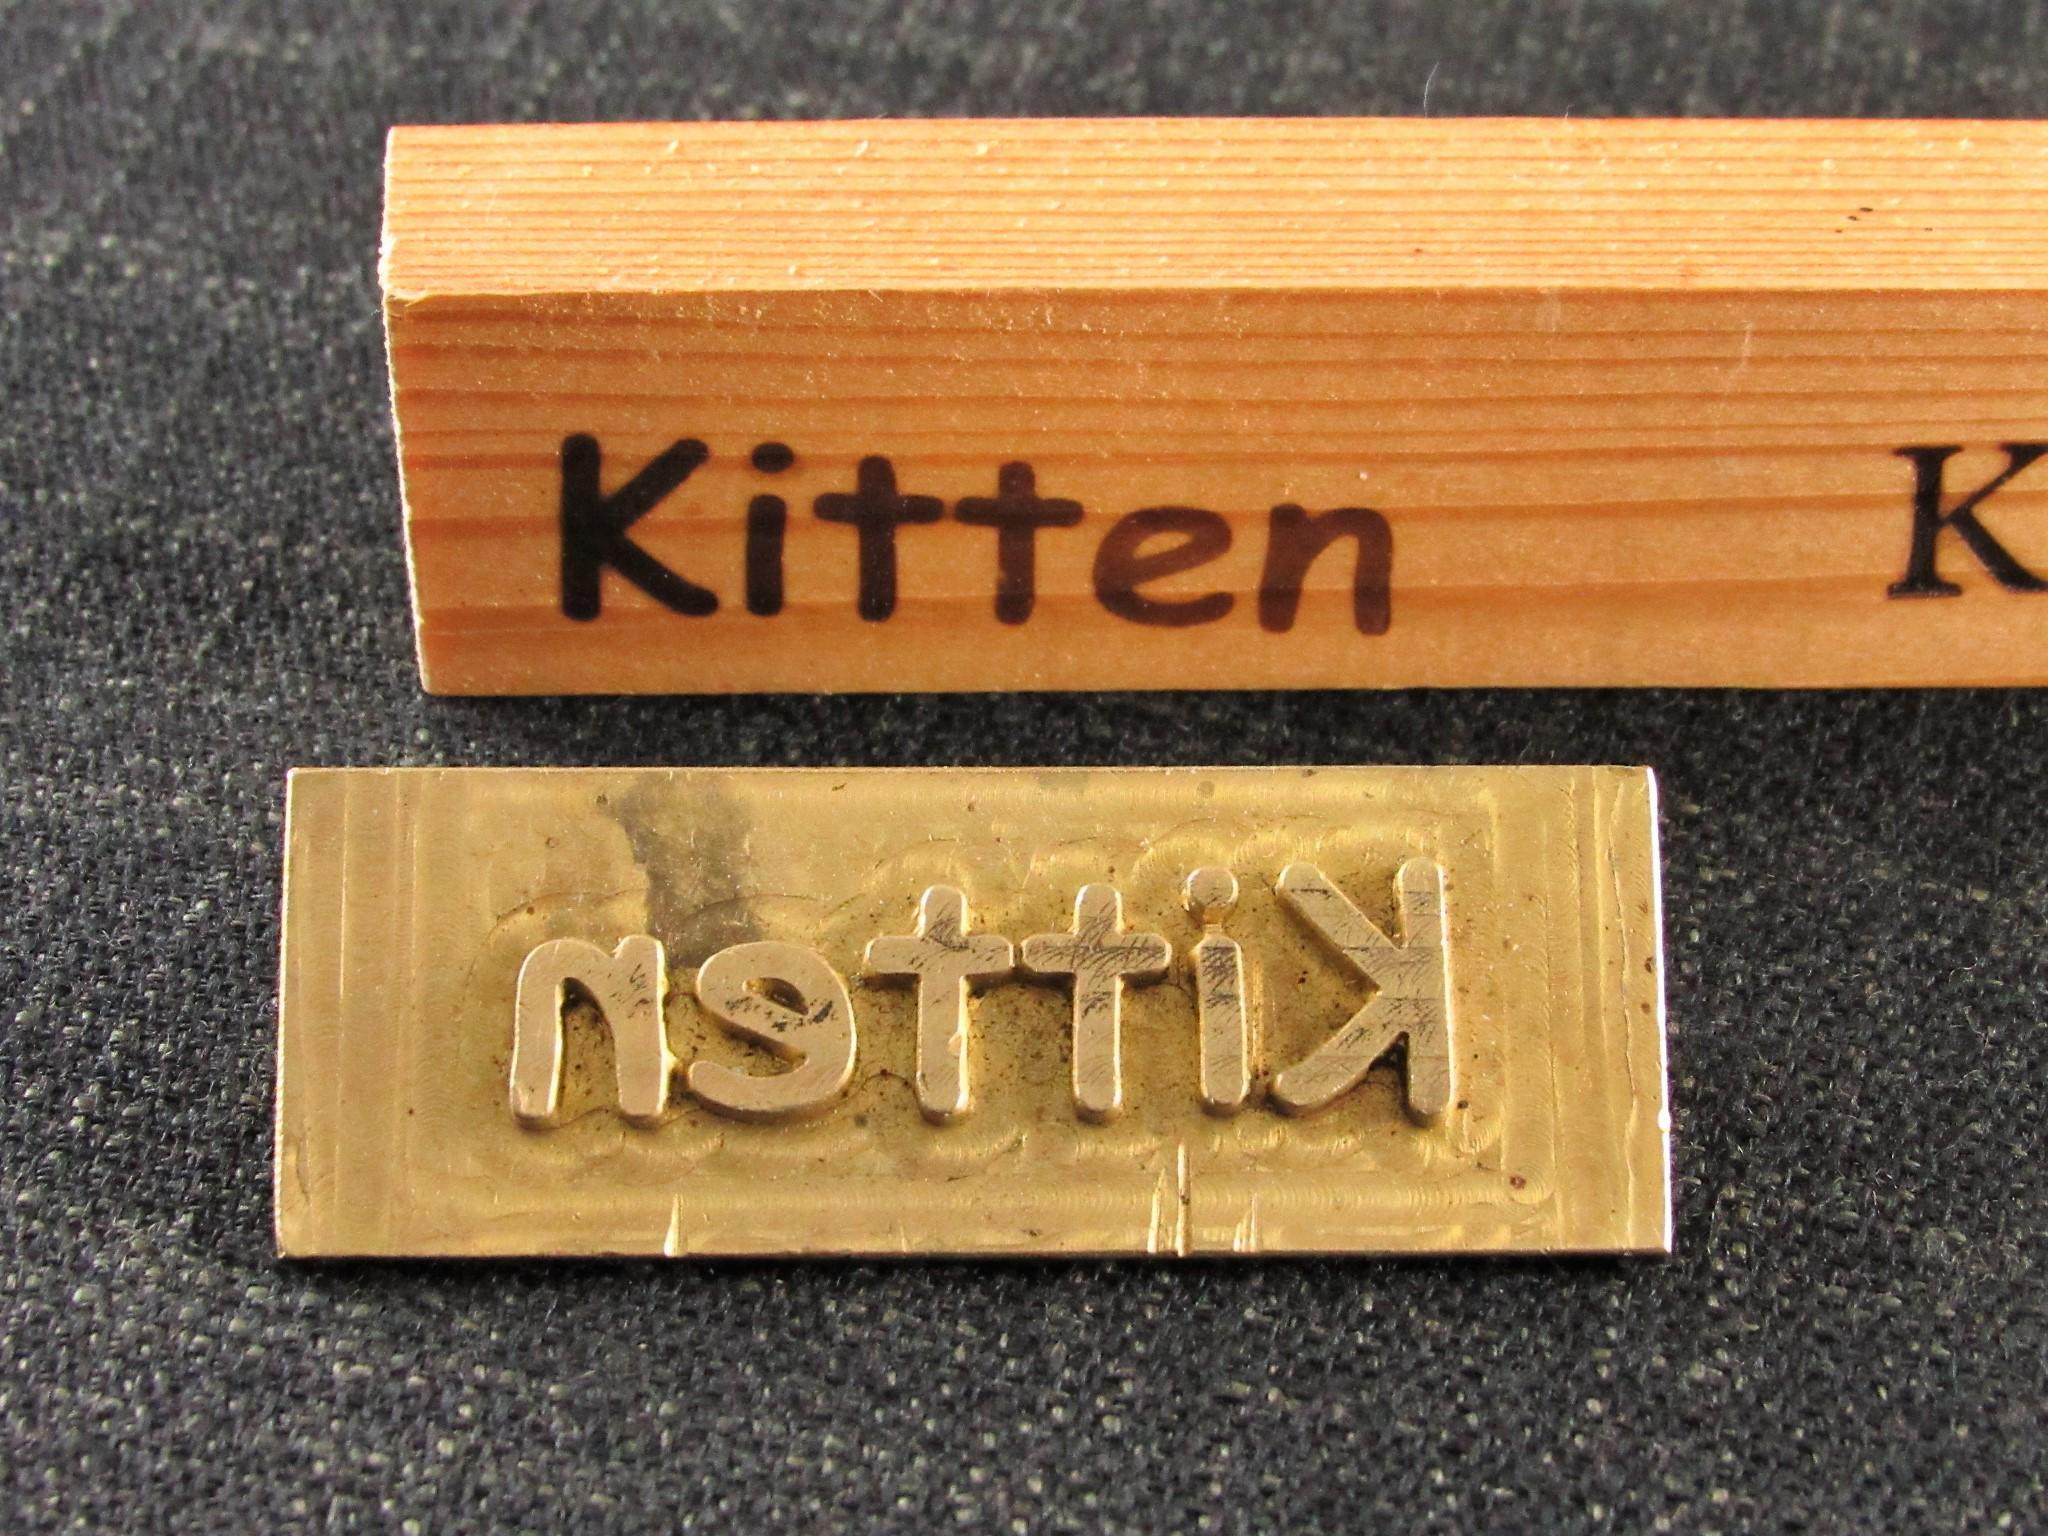 3 Brass Embossing Stamps from a Norfolk Shoe Factory - Kitten - KIKI - Pure